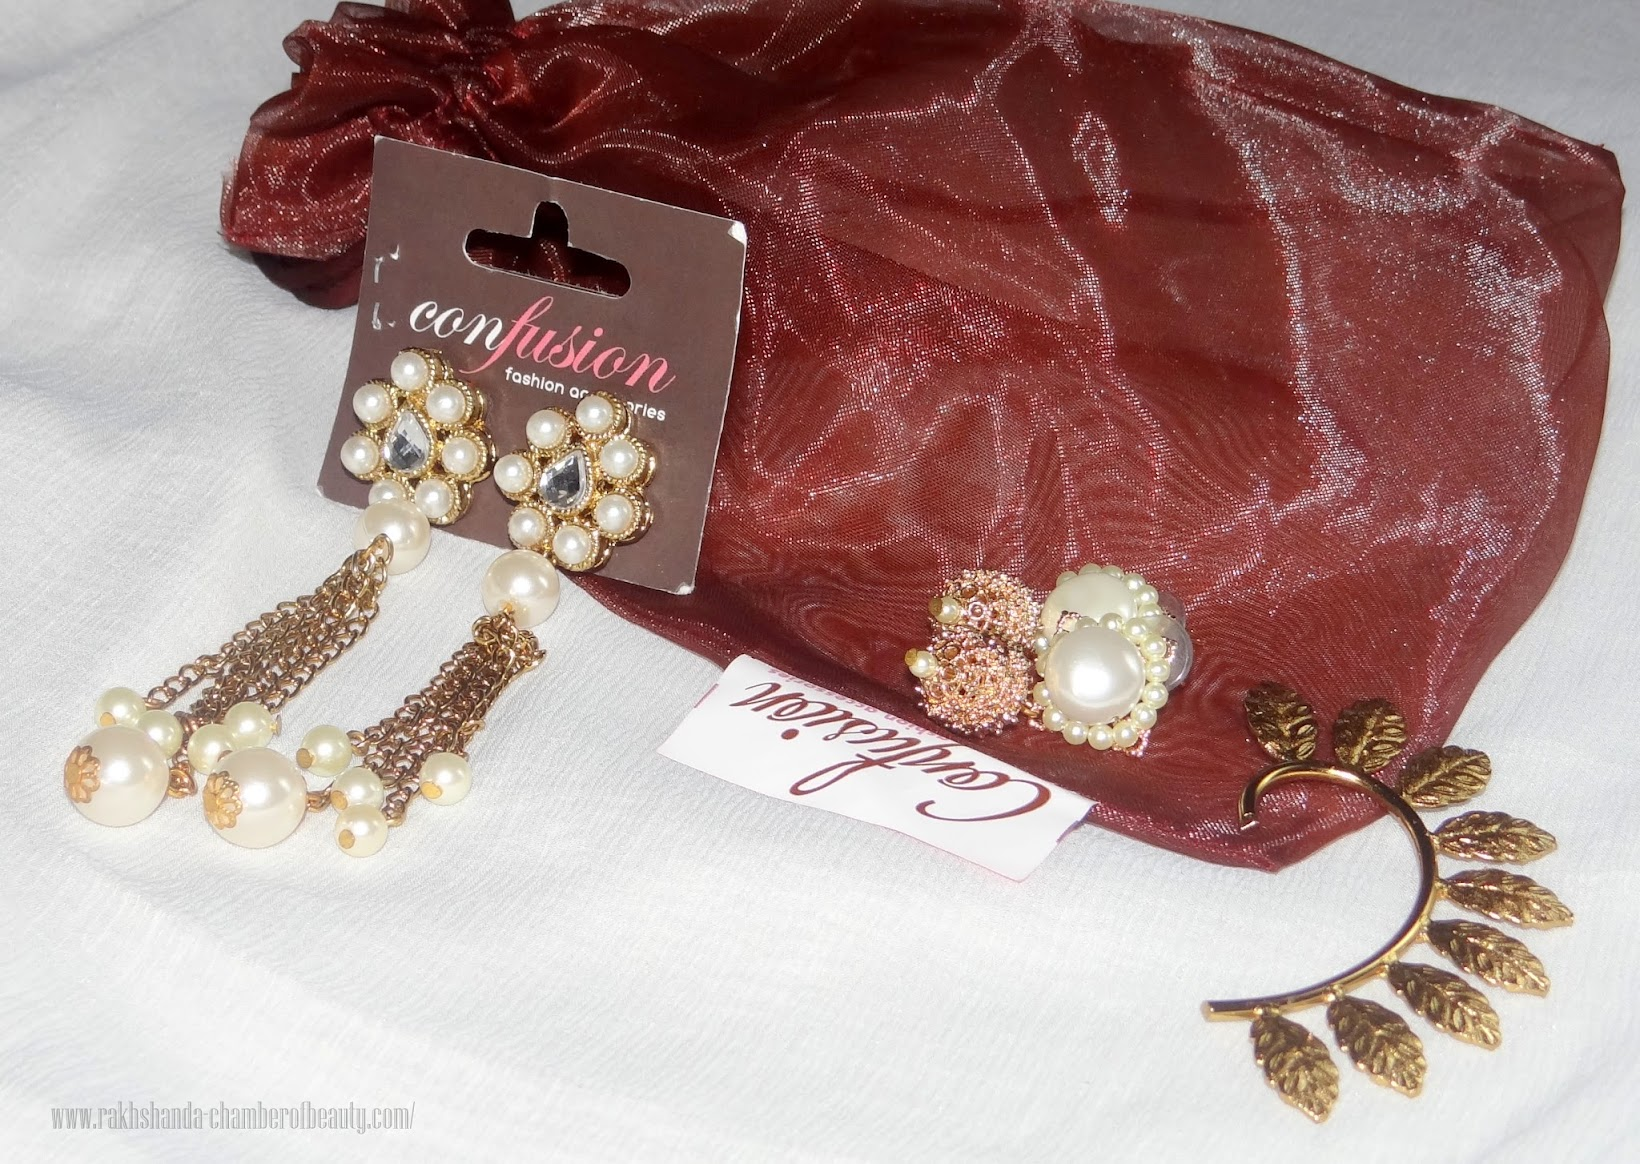 Confusion Fashion Accessories- review, Traditional jewelry Online, Indian fashion blogger, Chamber of Beauty